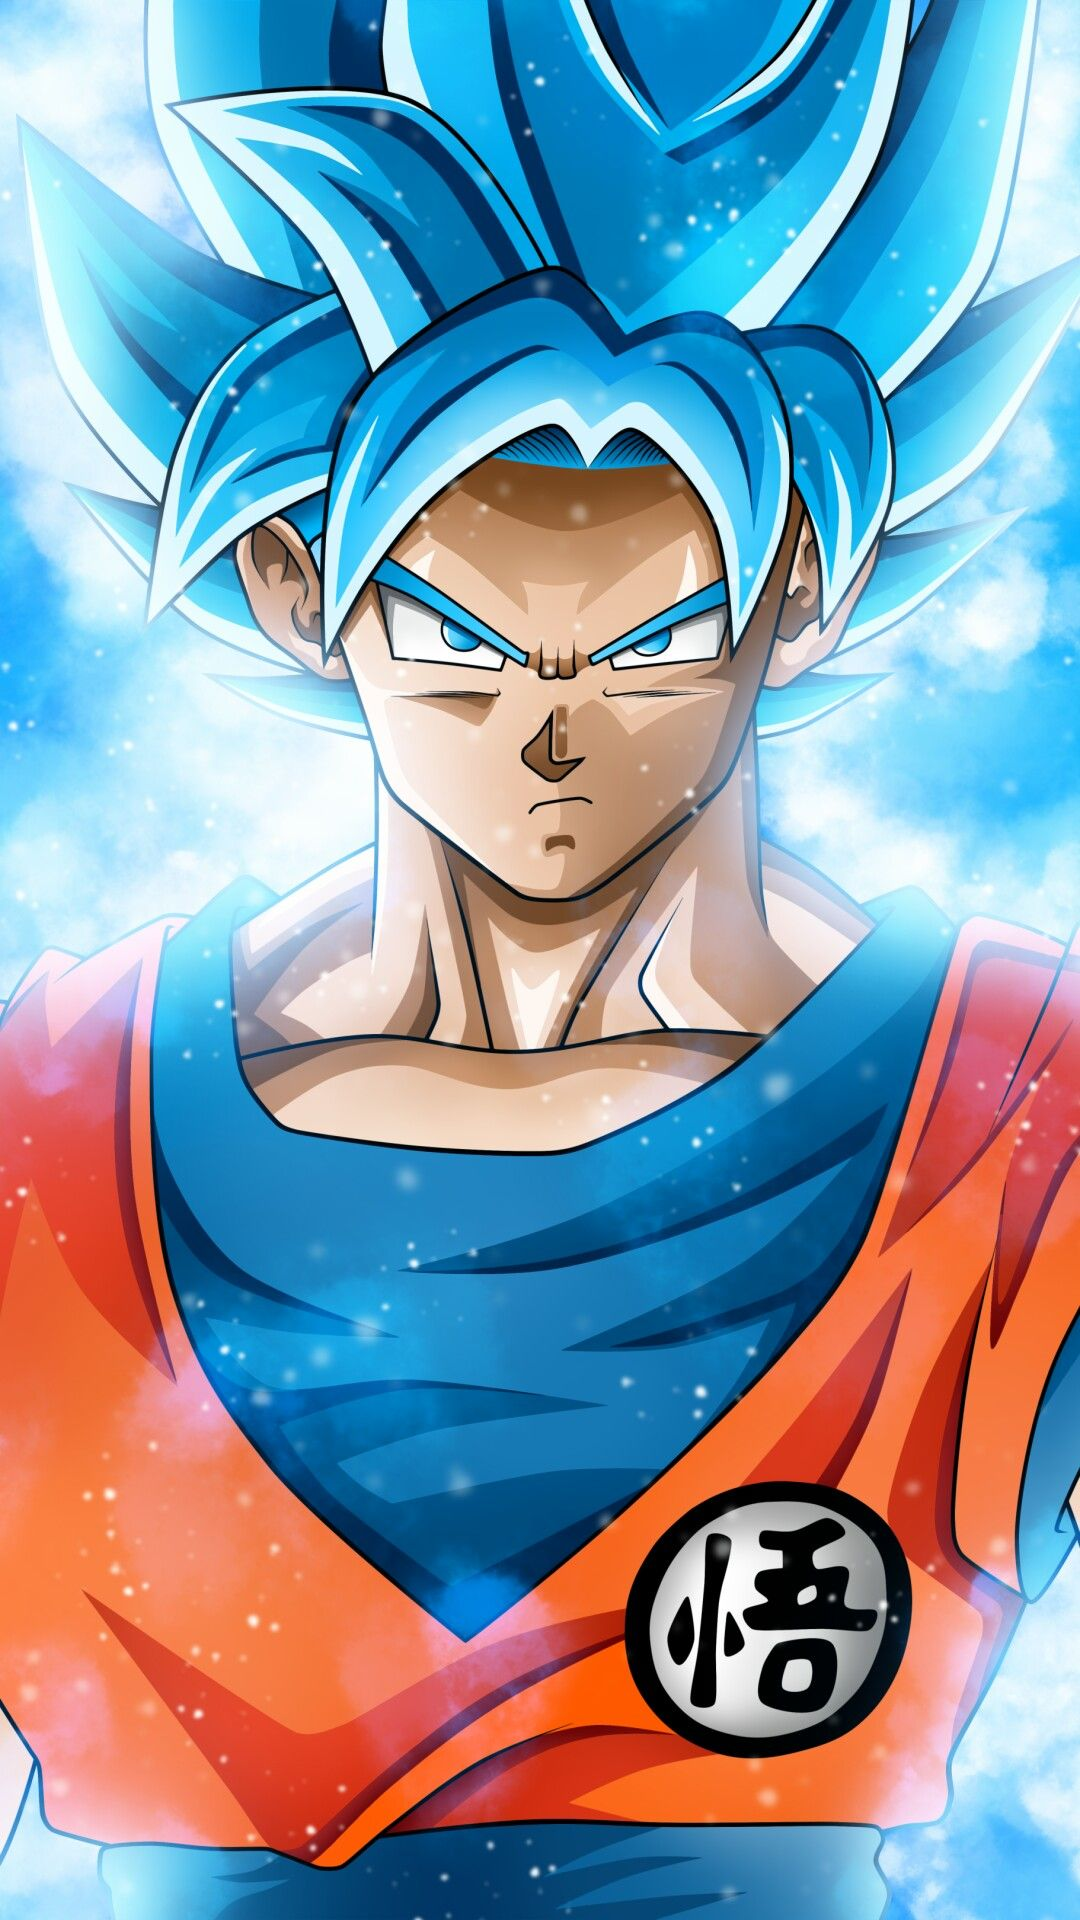 Goku Super Saiyan God Dessin Moi Pinterest Dragon Ball